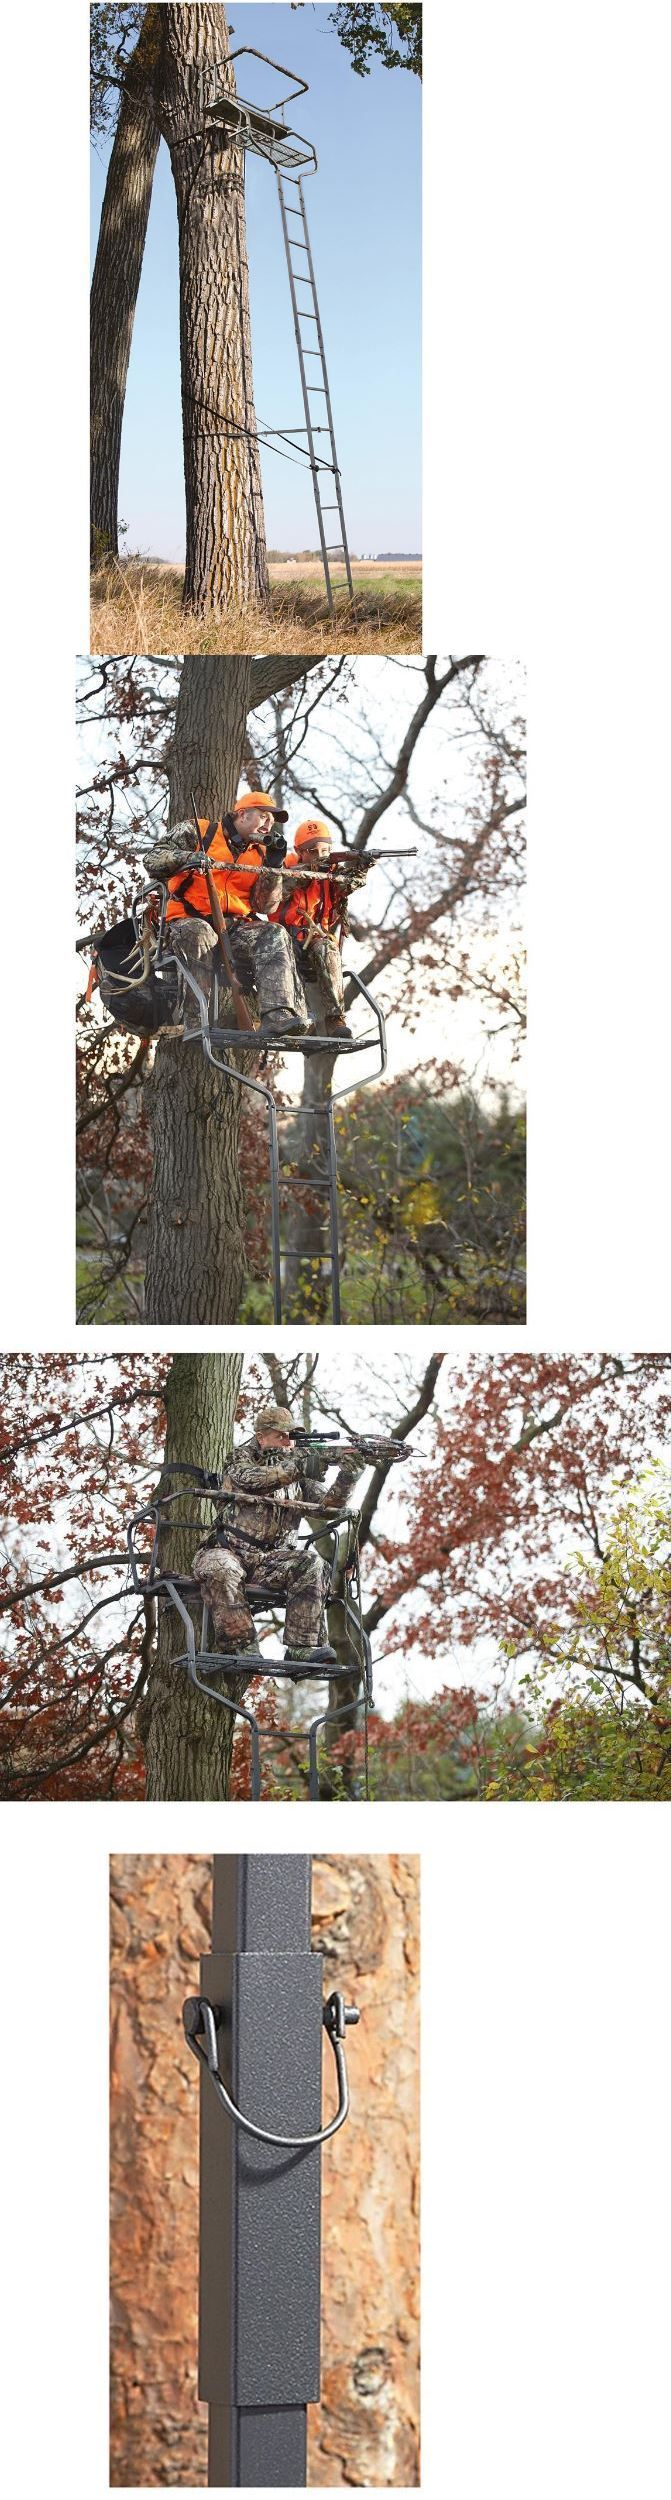 Tree Stands 52508: Climbing Tree Stand Climber Double 2 Person Ladder Blind Deer Bow Rifle Hunting BUY IT NOW ONLY: $149.95